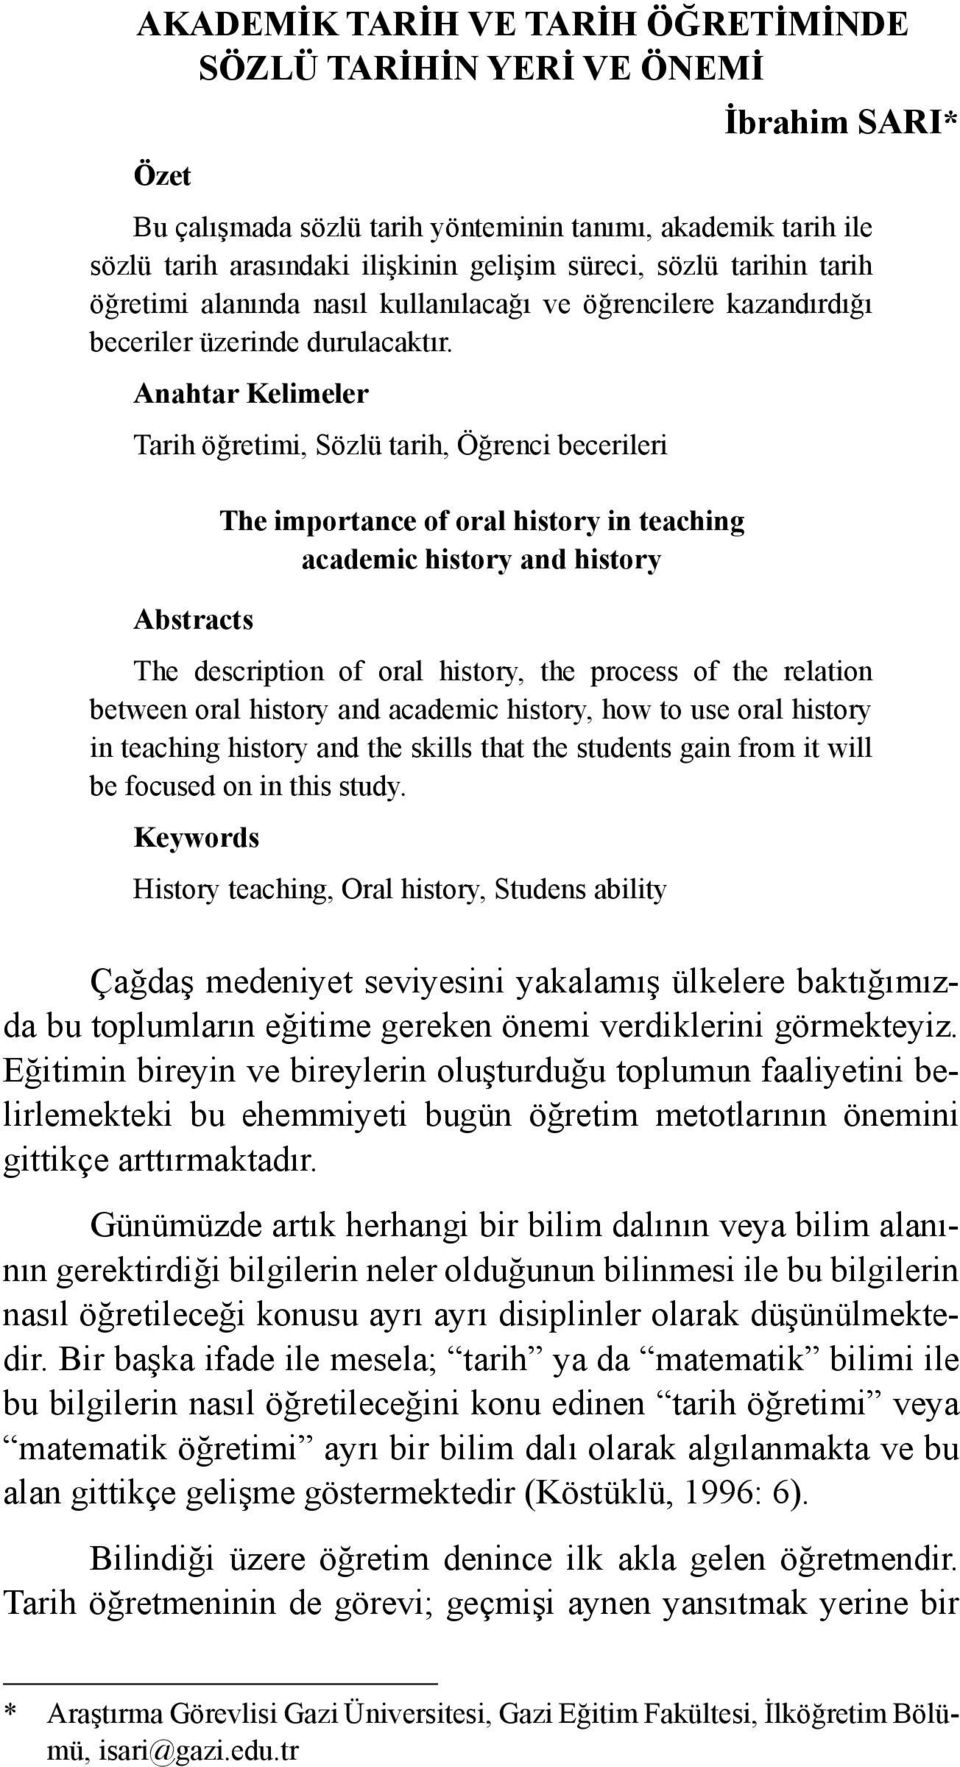 Anahtar Kelimeler Tarih öğretimi, Sözlü tarih, Öğrenci becerileri Abstracts The importance of oral history in teaching academic history and history The description of oral history, the process of the